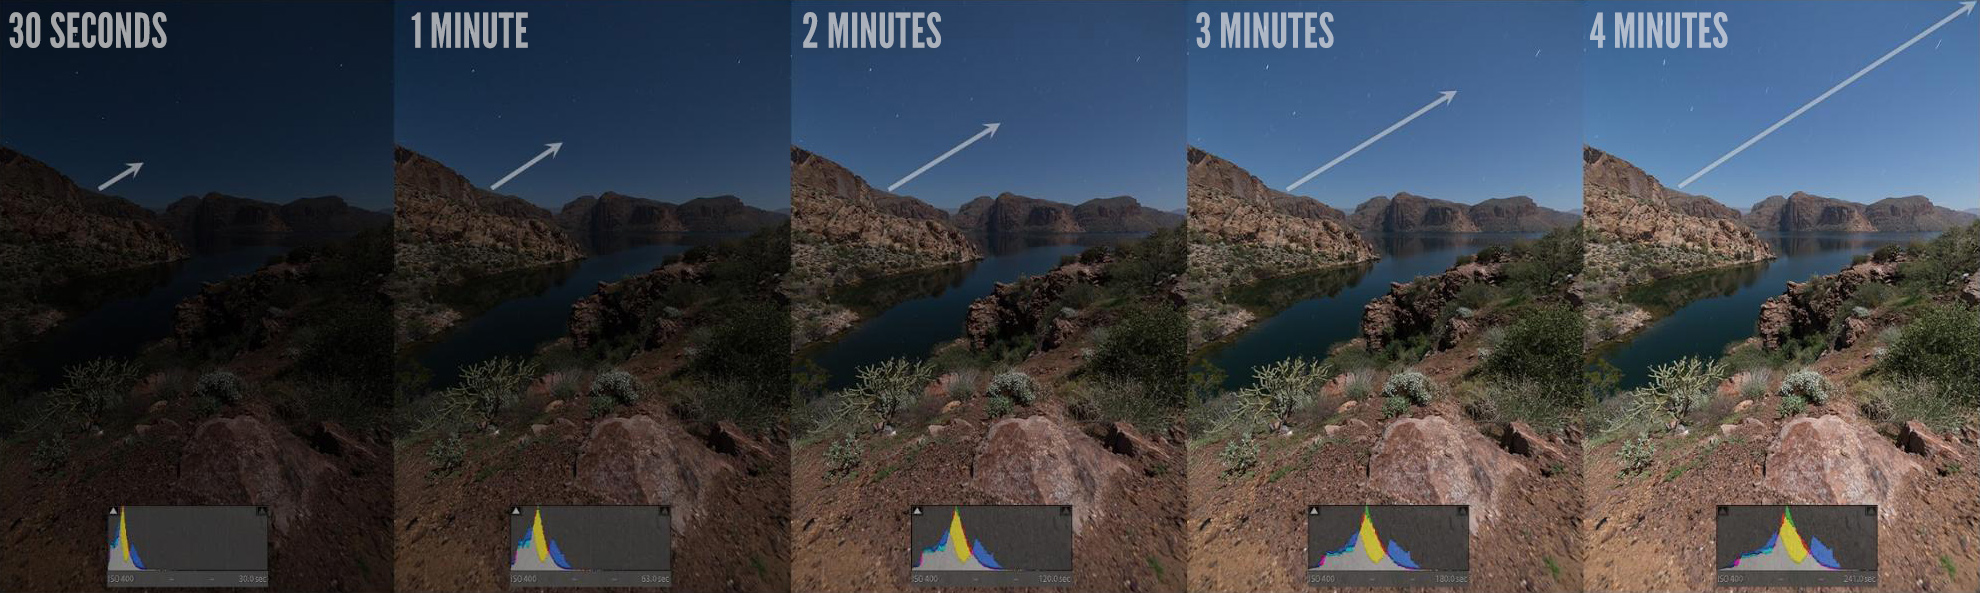 moonlit-landscapes-exposure-comparison